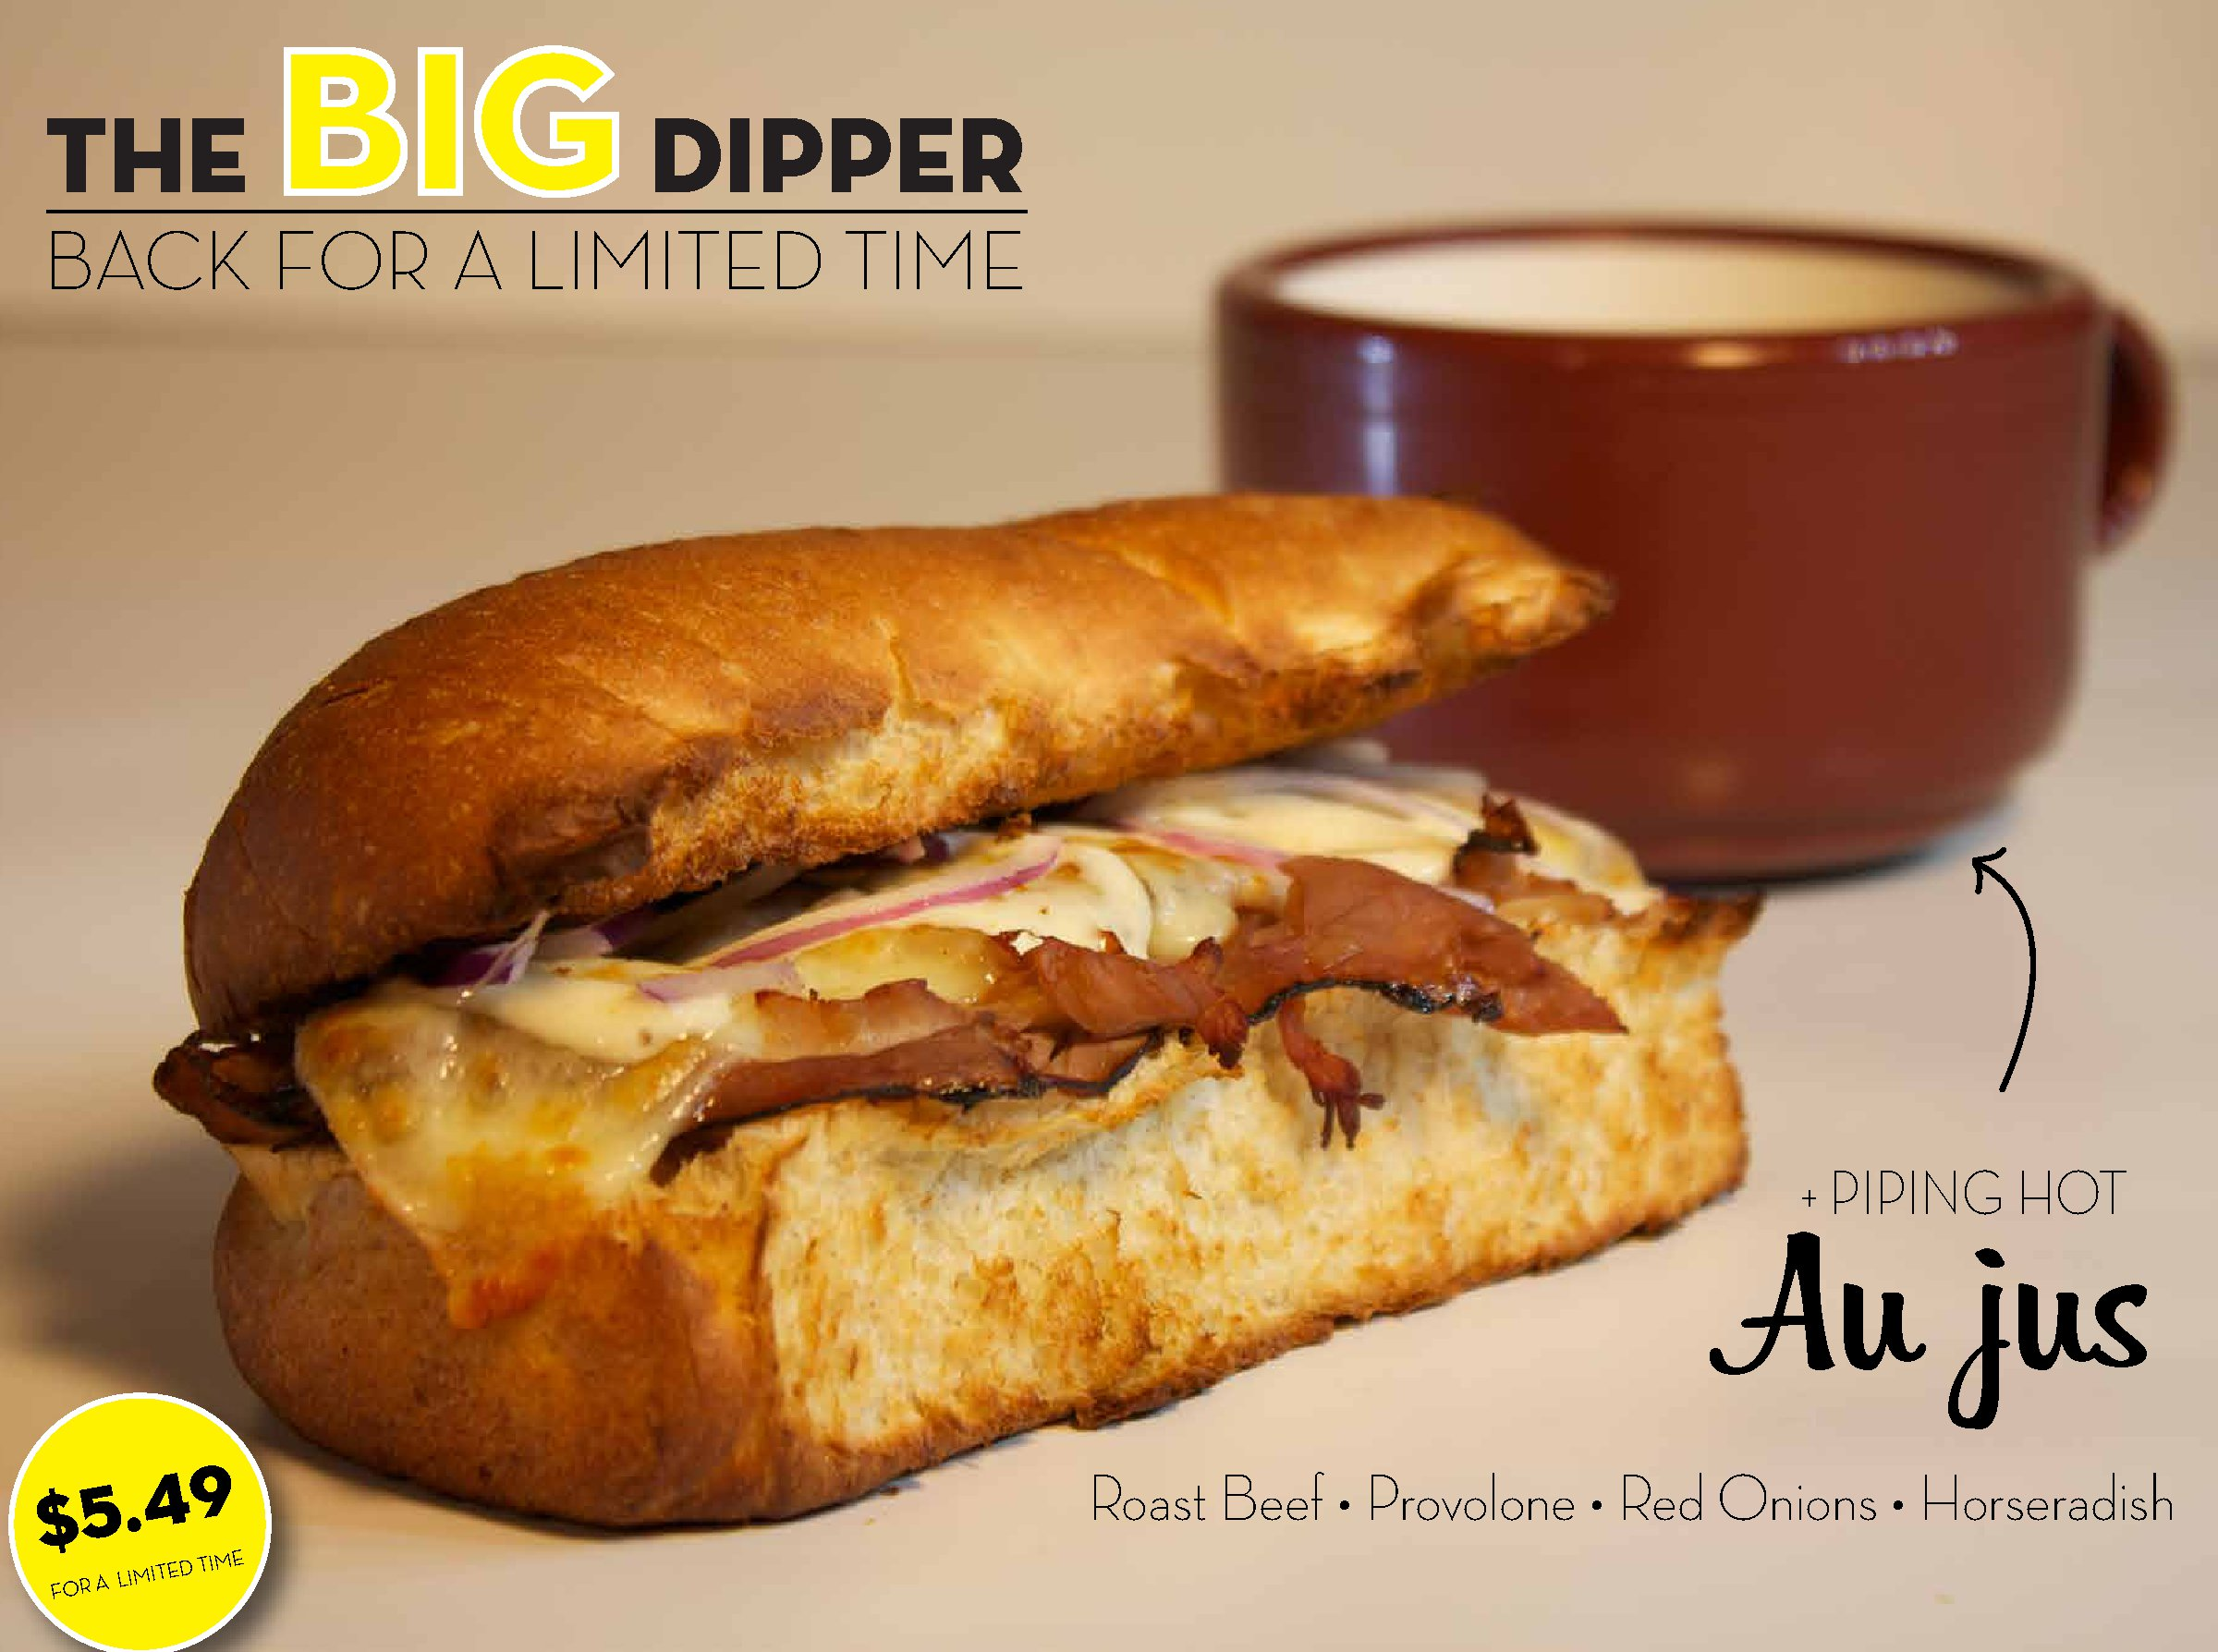 The Big Dipper is back for a limited time only